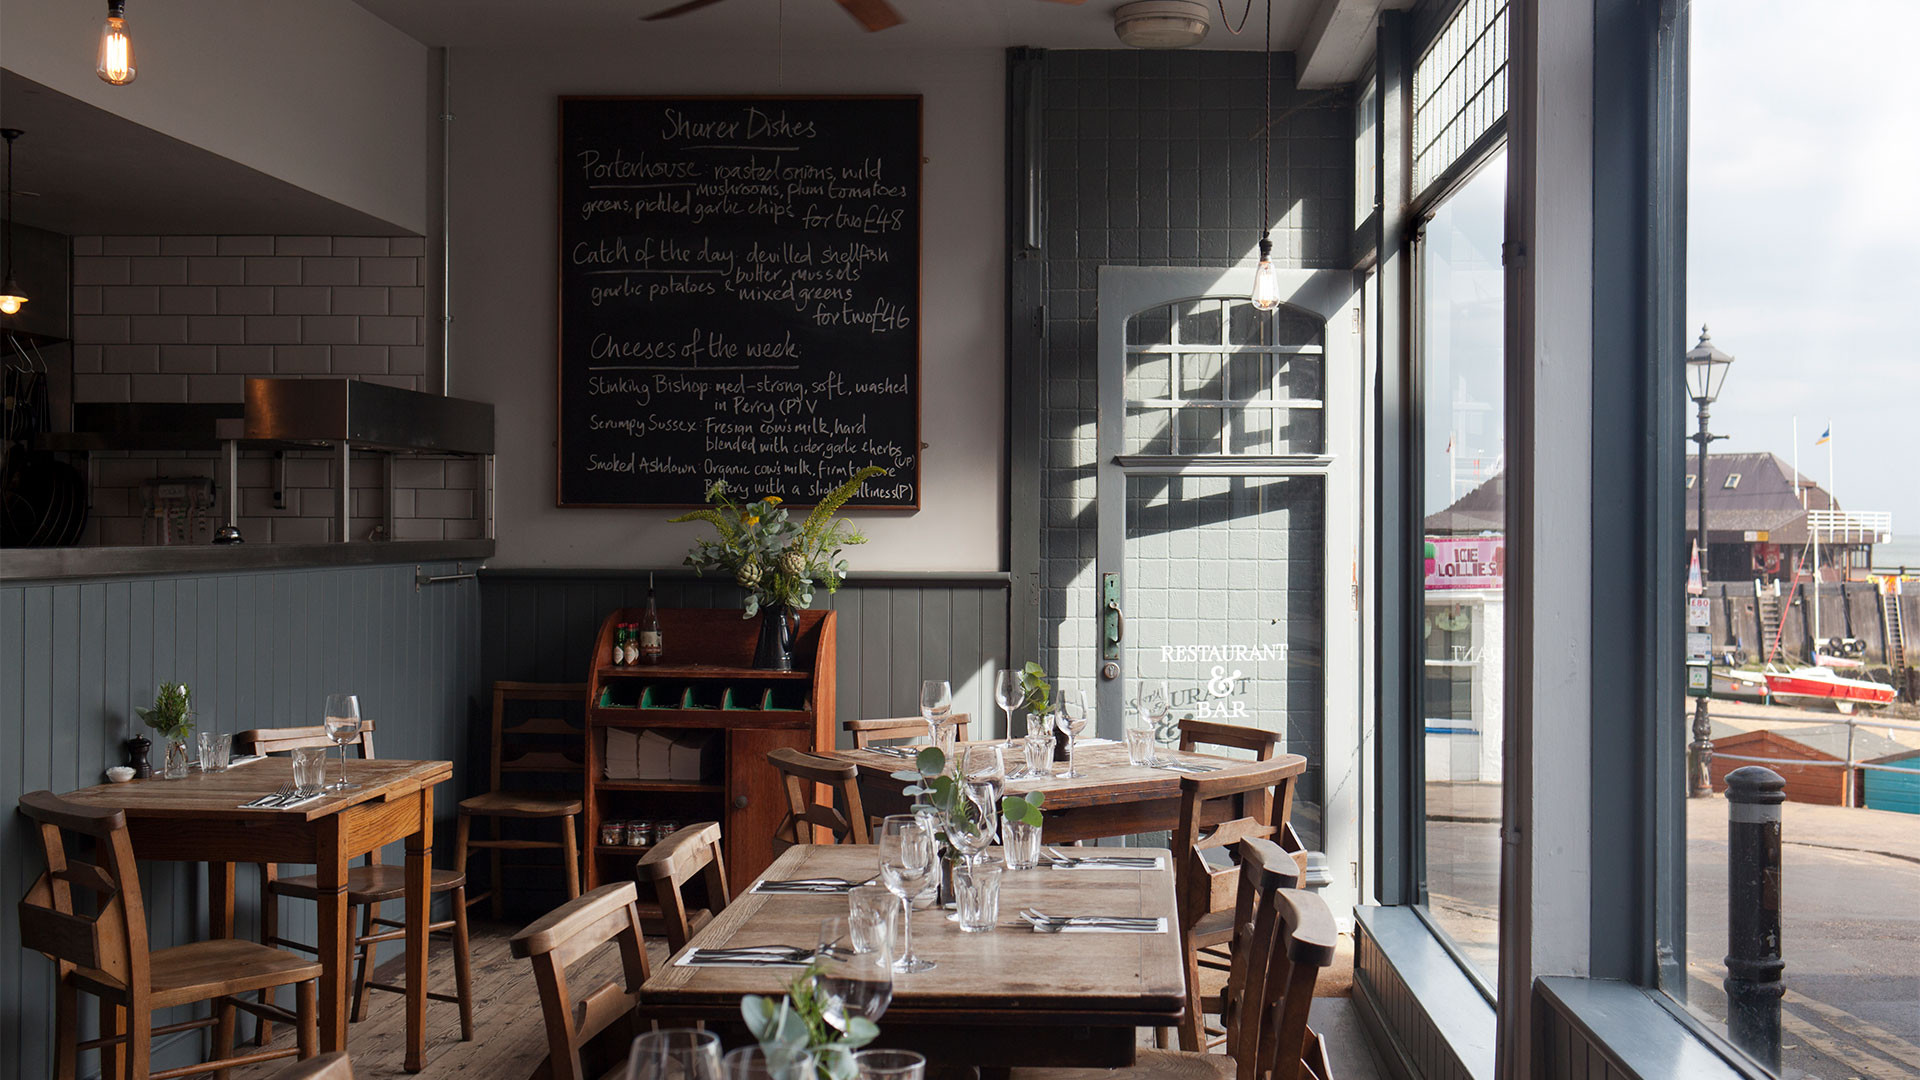 Wyatt & Jones restaurant, Broadstairs